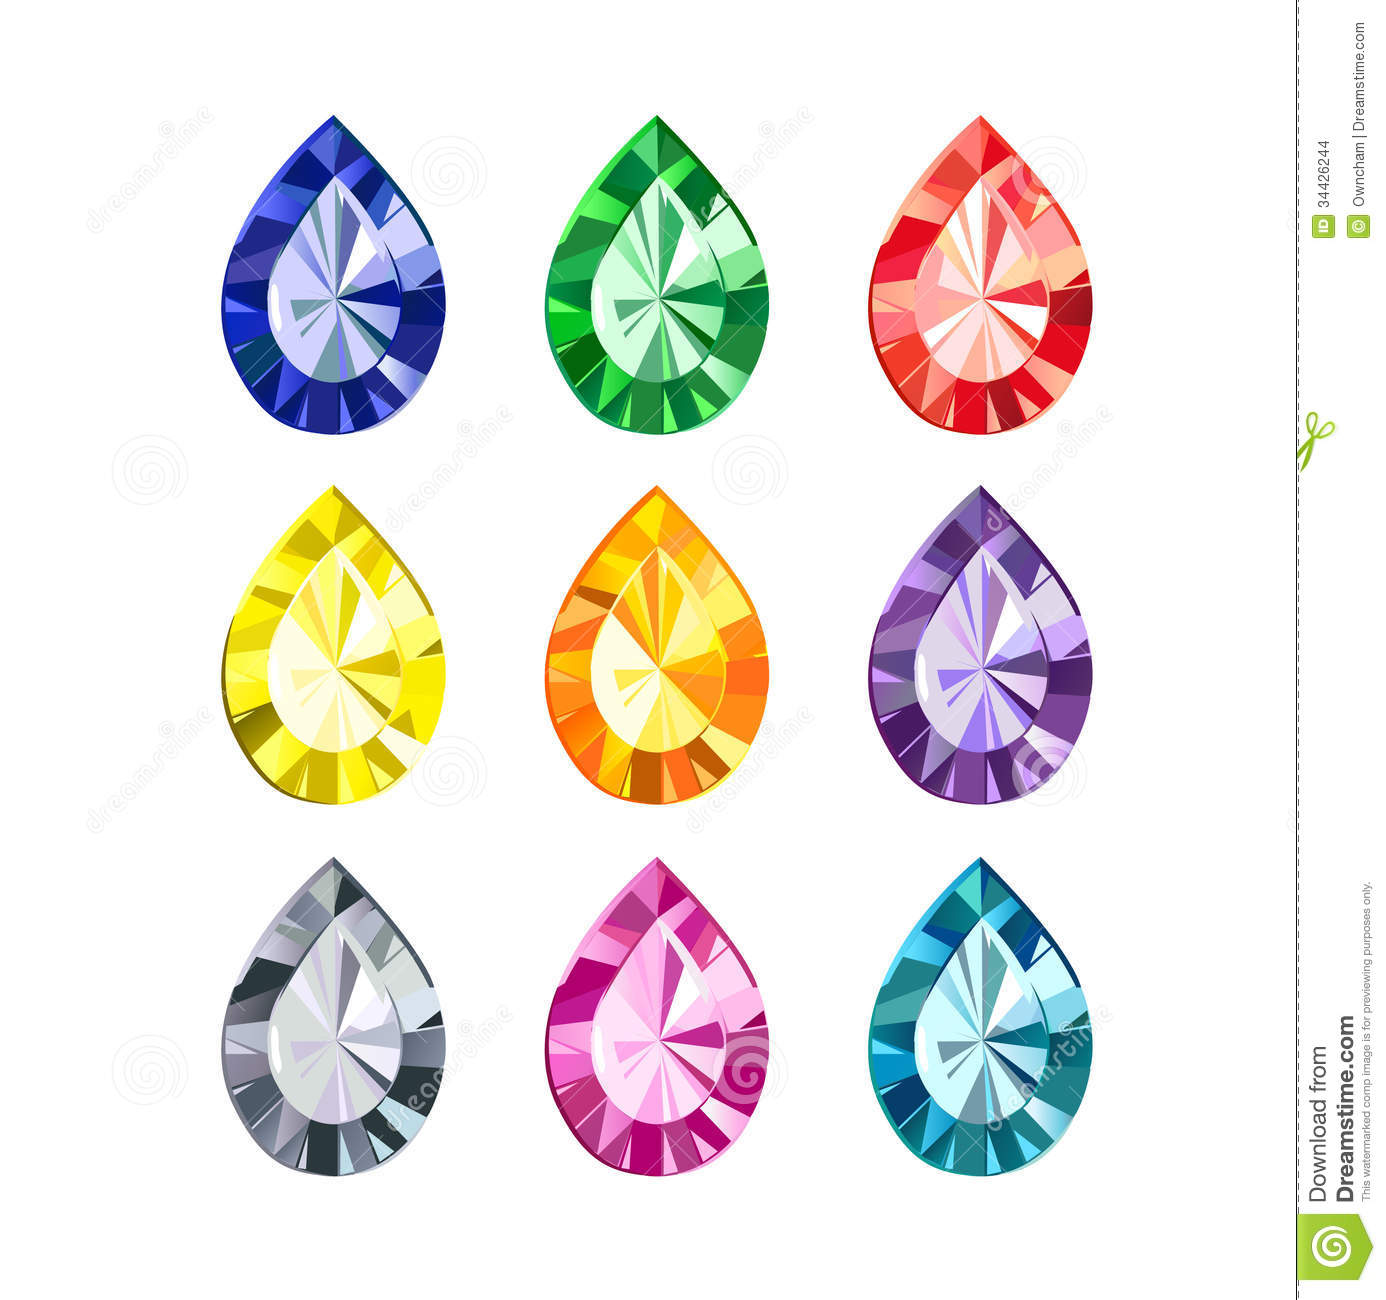 Gems clipart gemstone Jewels Clipart And gemstones Clipart